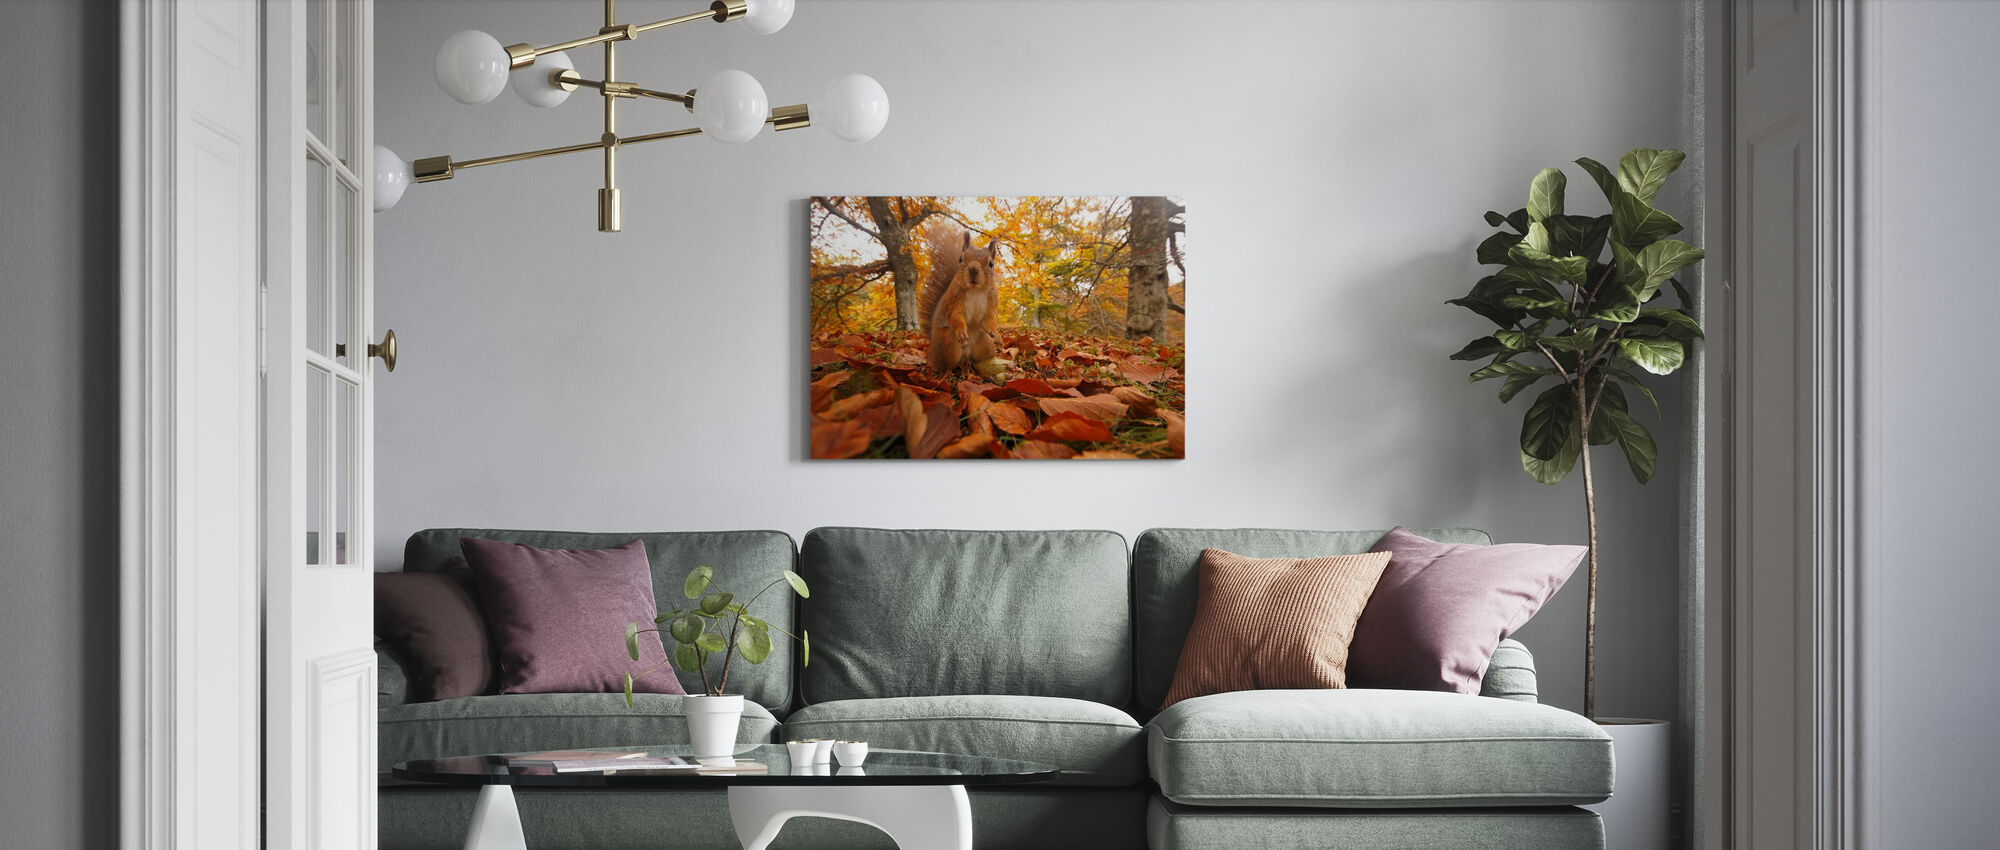 Red Squirrel in Leaf Litter - Canvas print - Living Room